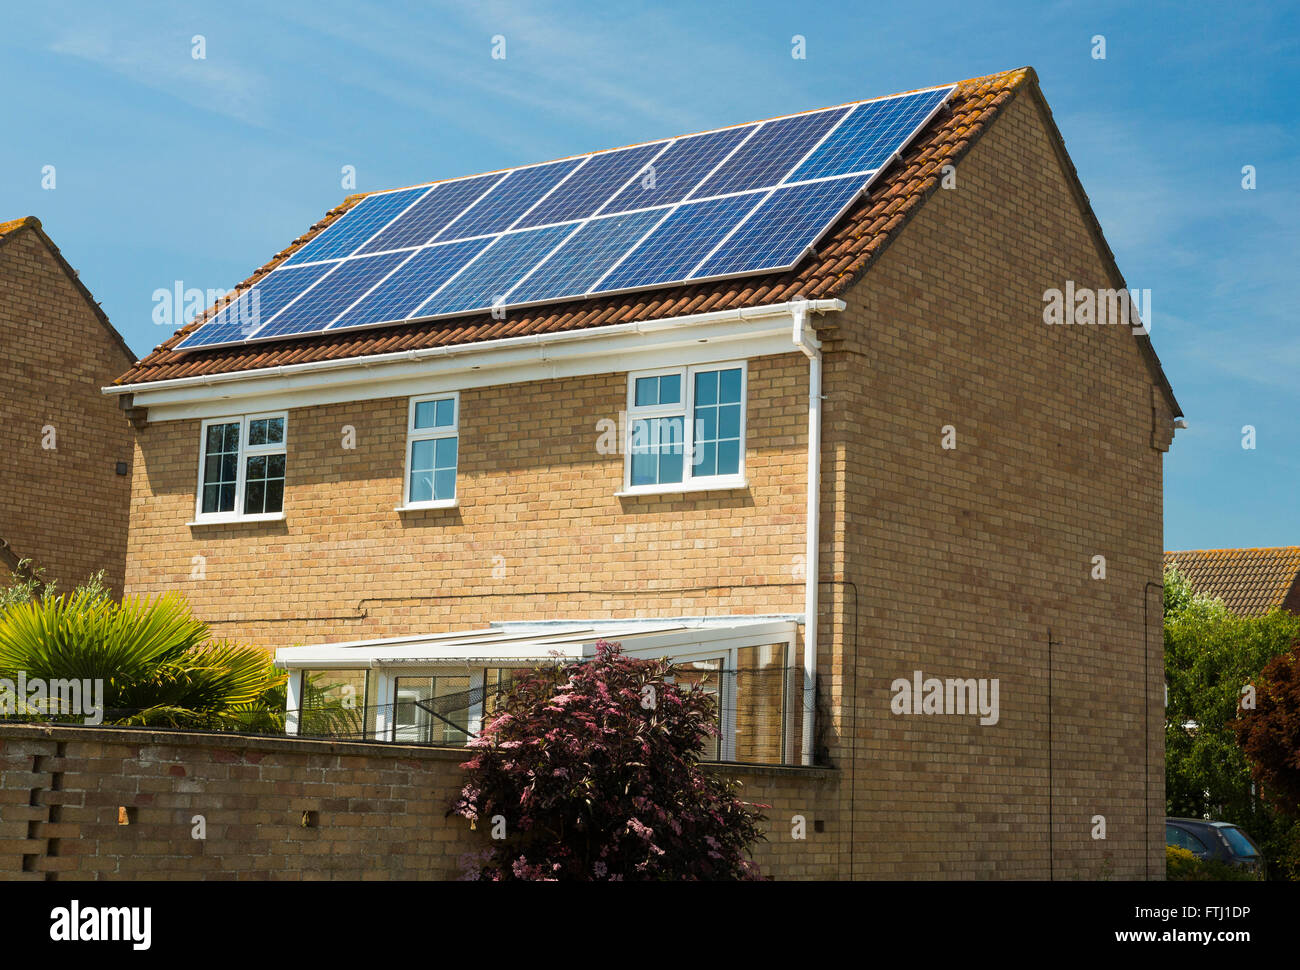 photovoltaic solar panels on house in the UK - Stock Image